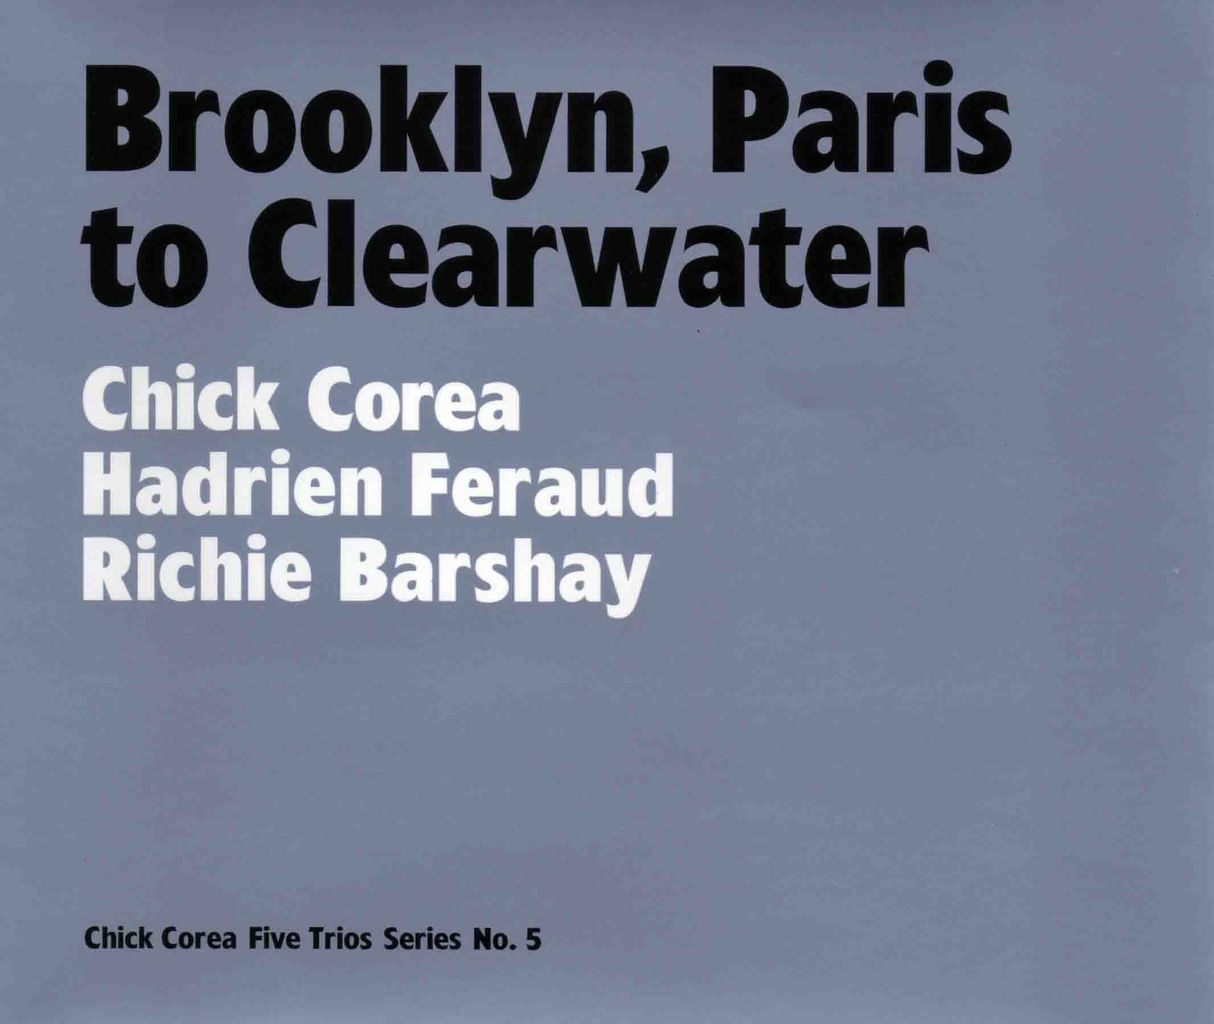 BROOKLYN, PARIS TO CLEARWATER-1